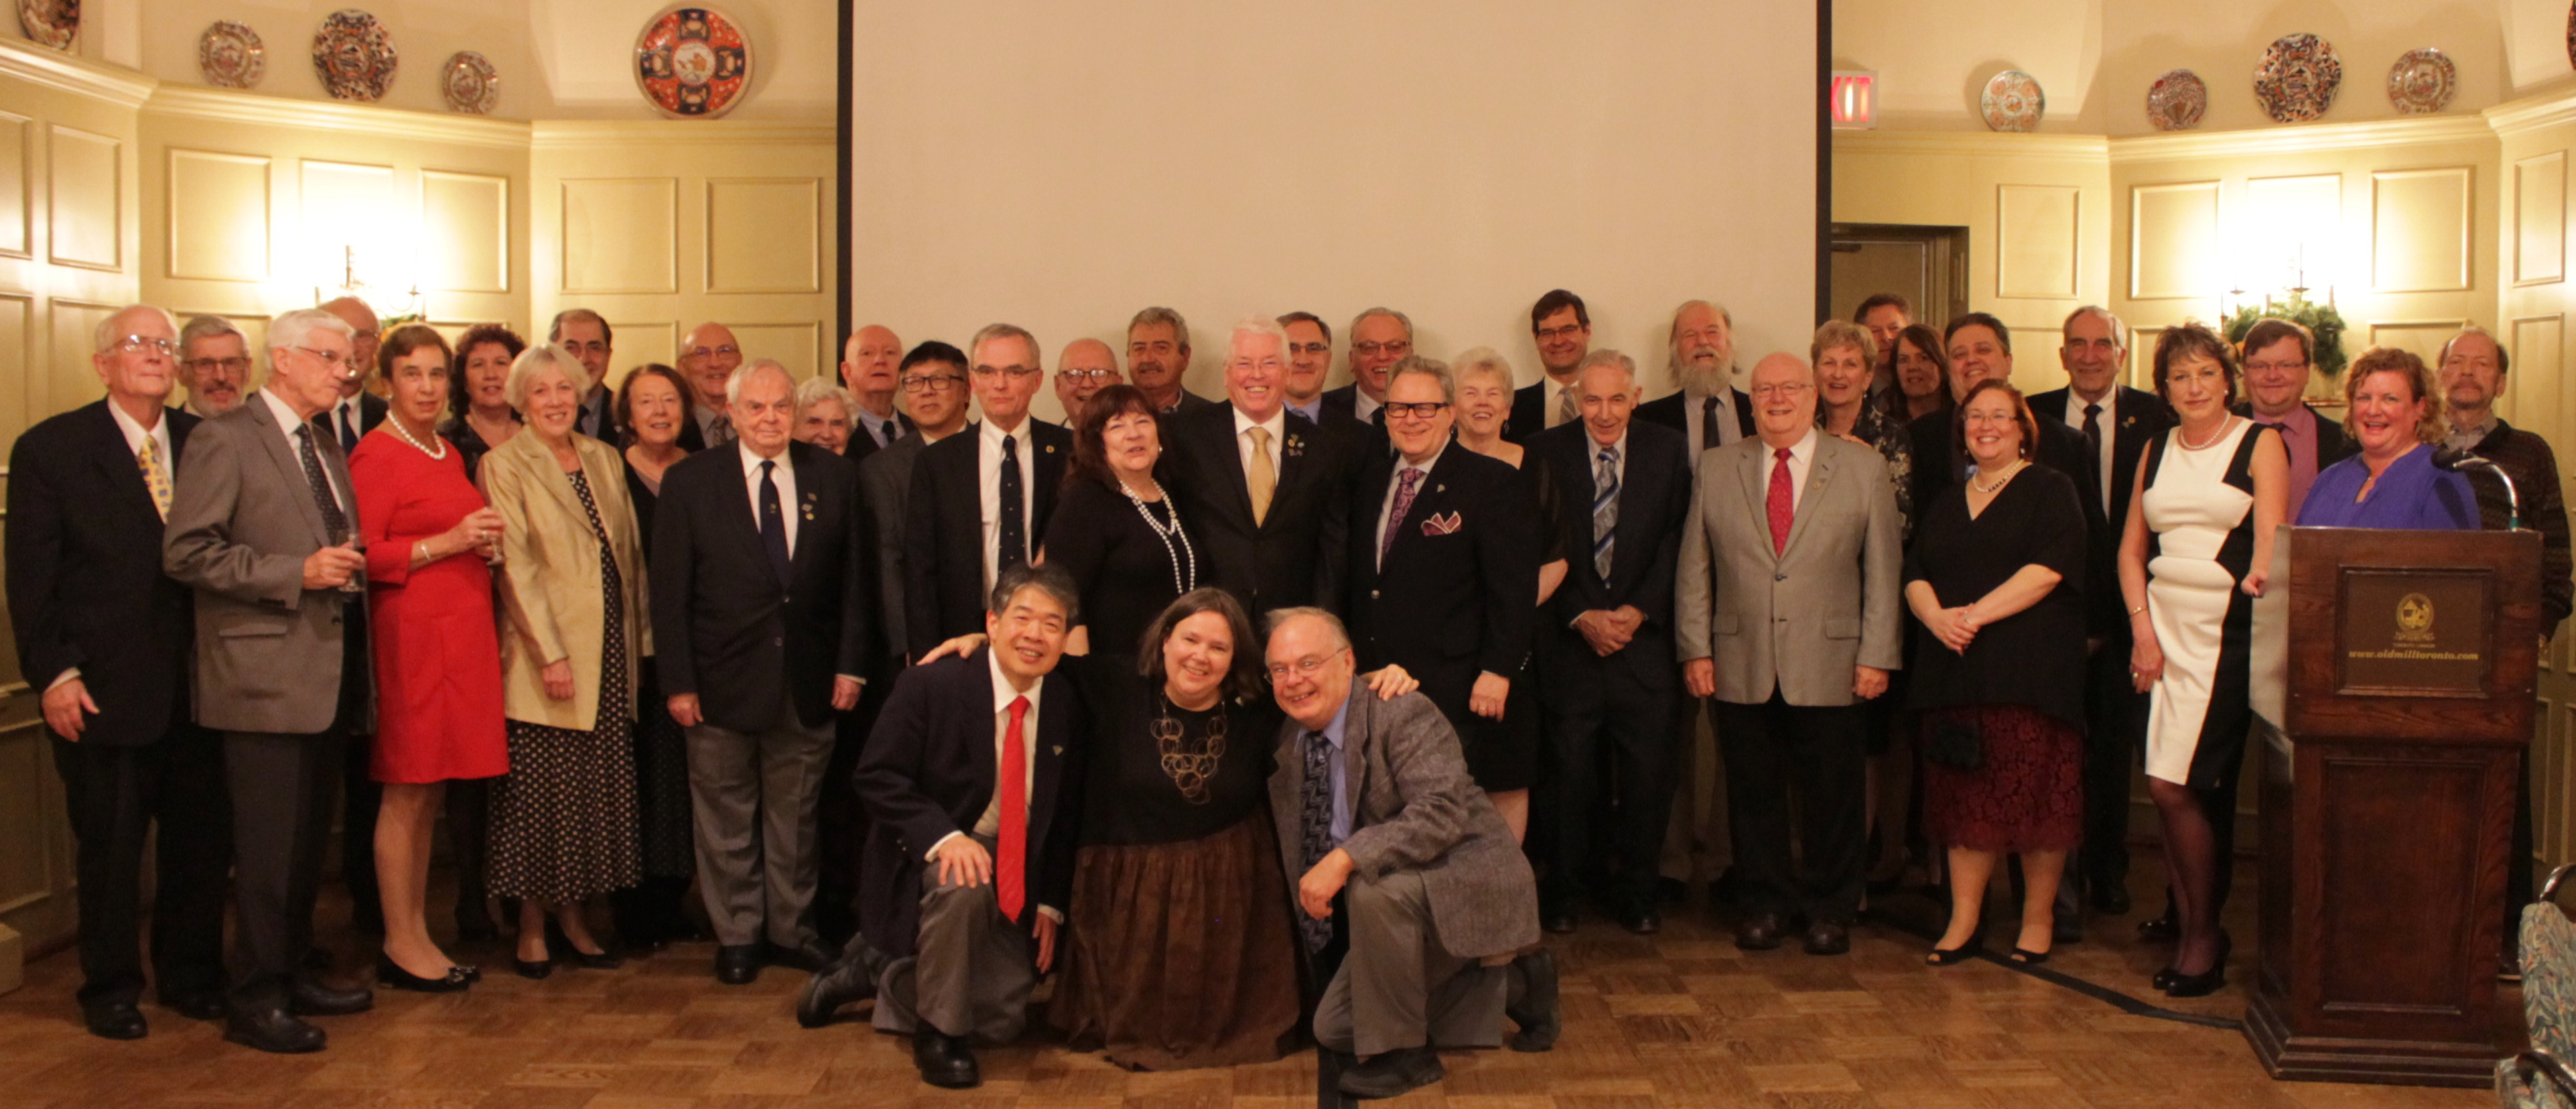 Philatelic Specialists Society of Canada - Banquet Speakers